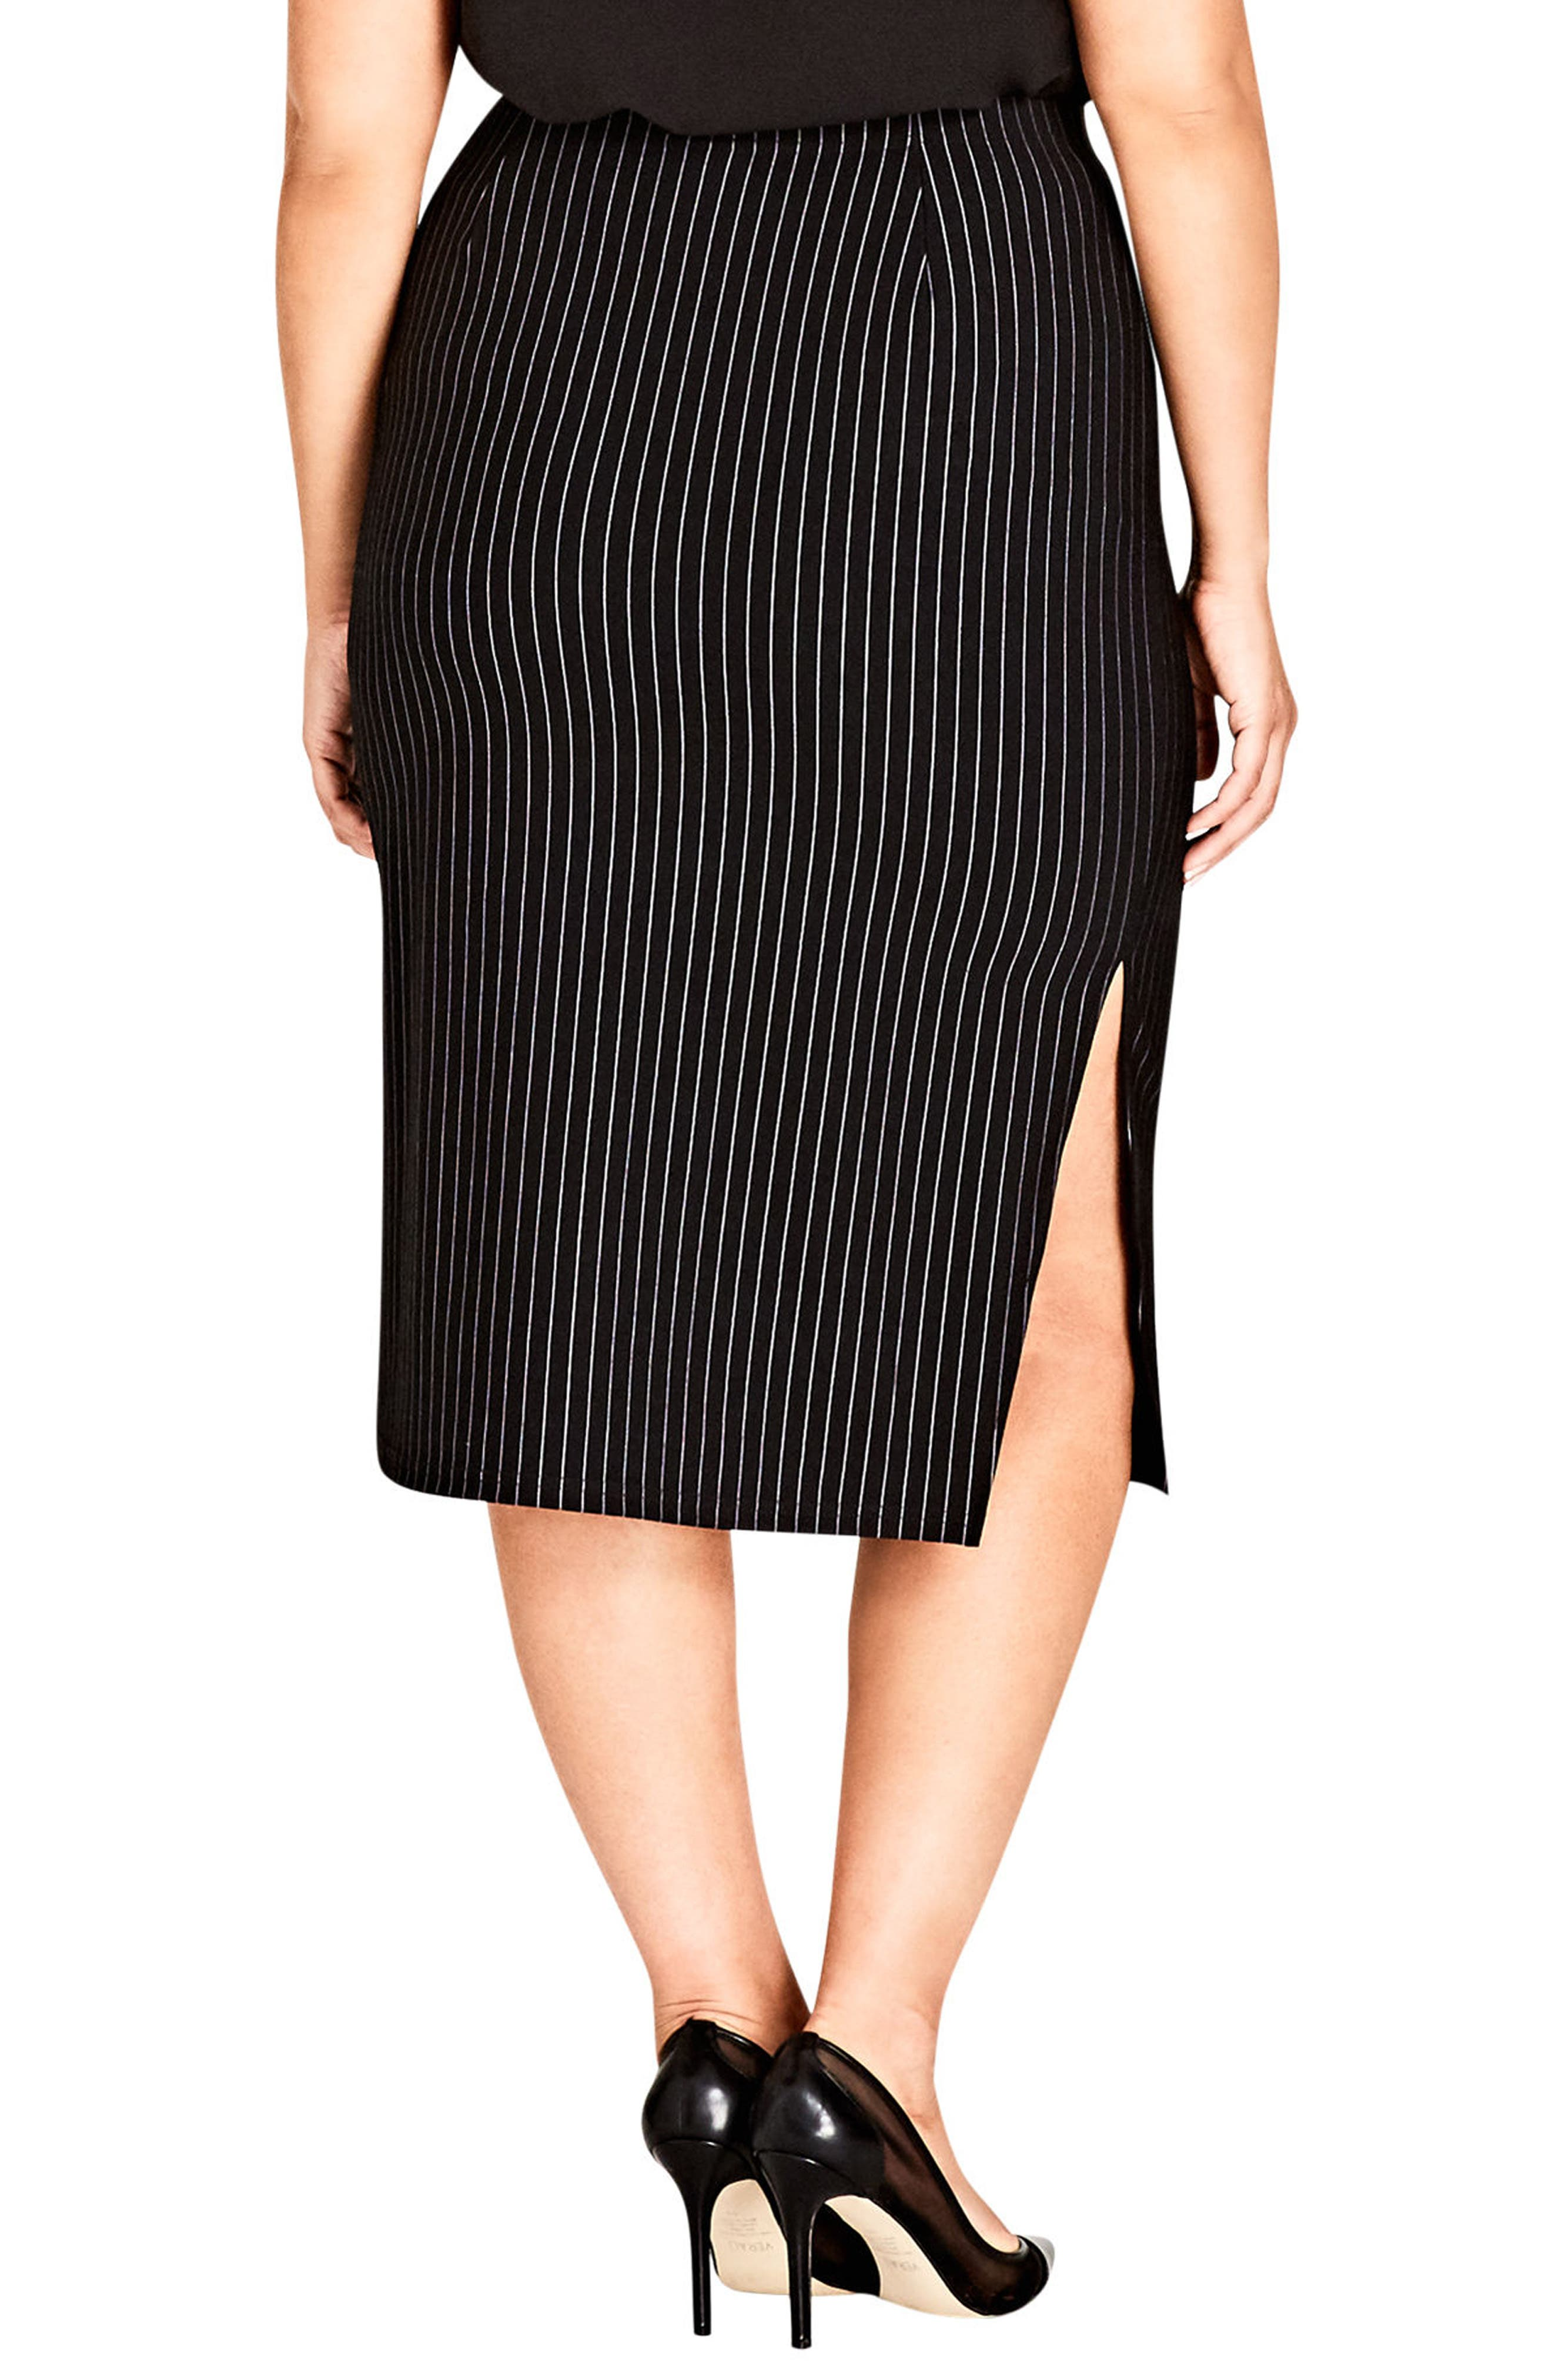 Chic City On Point Pencil skirt,                             Alternate thumbnail 2, color,                             Pin Stripe